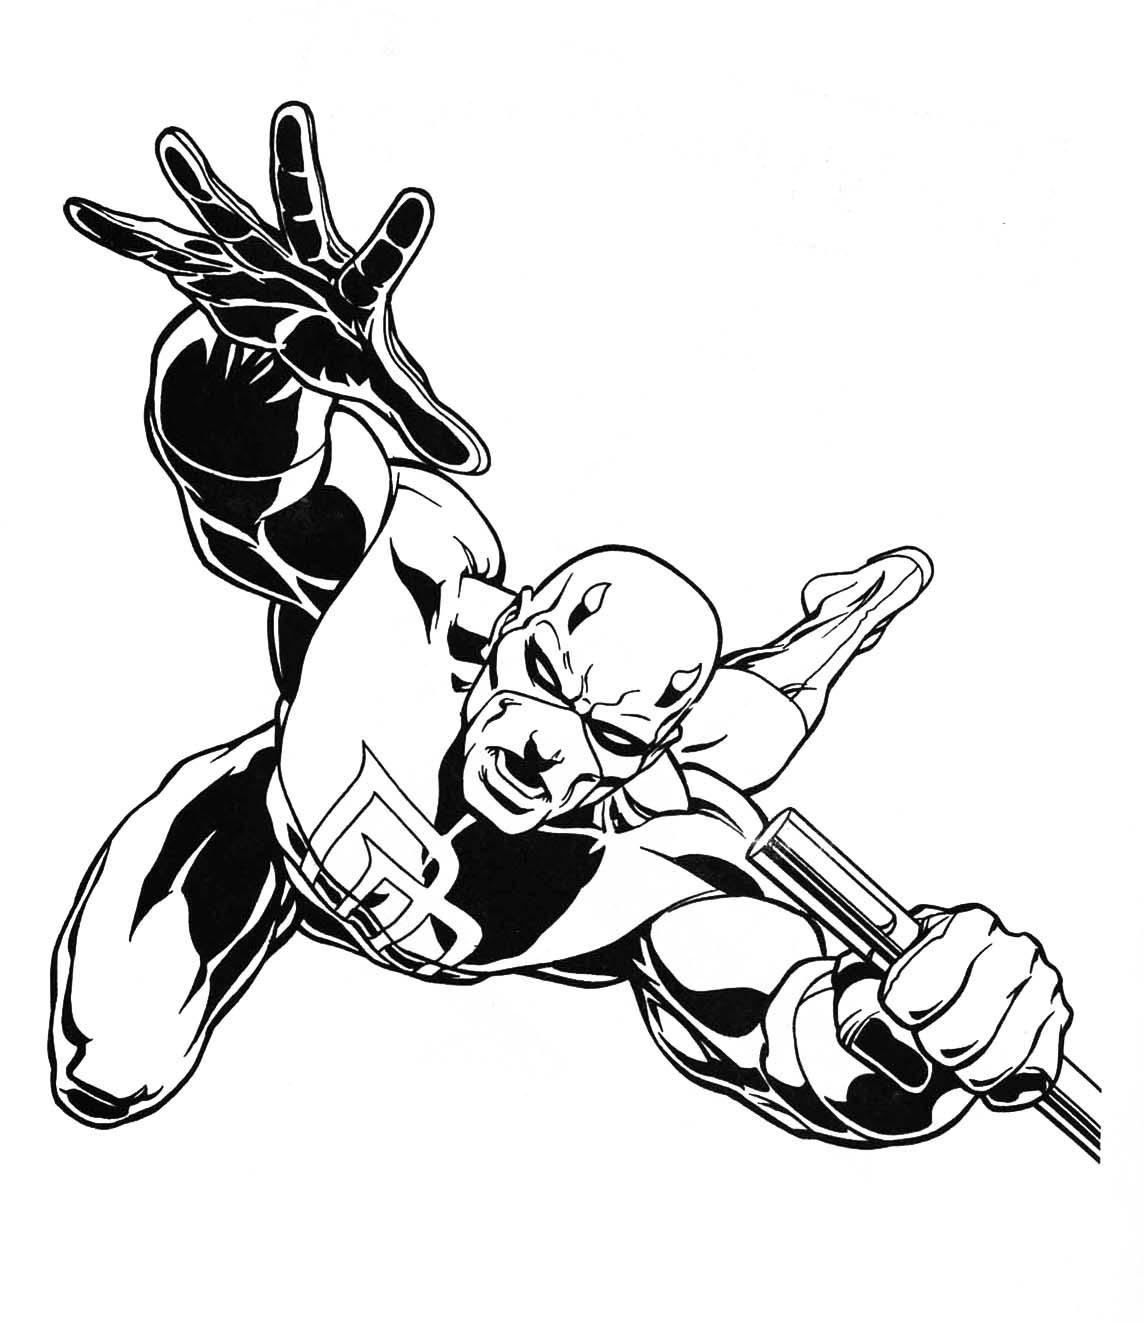 Marvel Coloring Pages | Free download on ClipArtMag